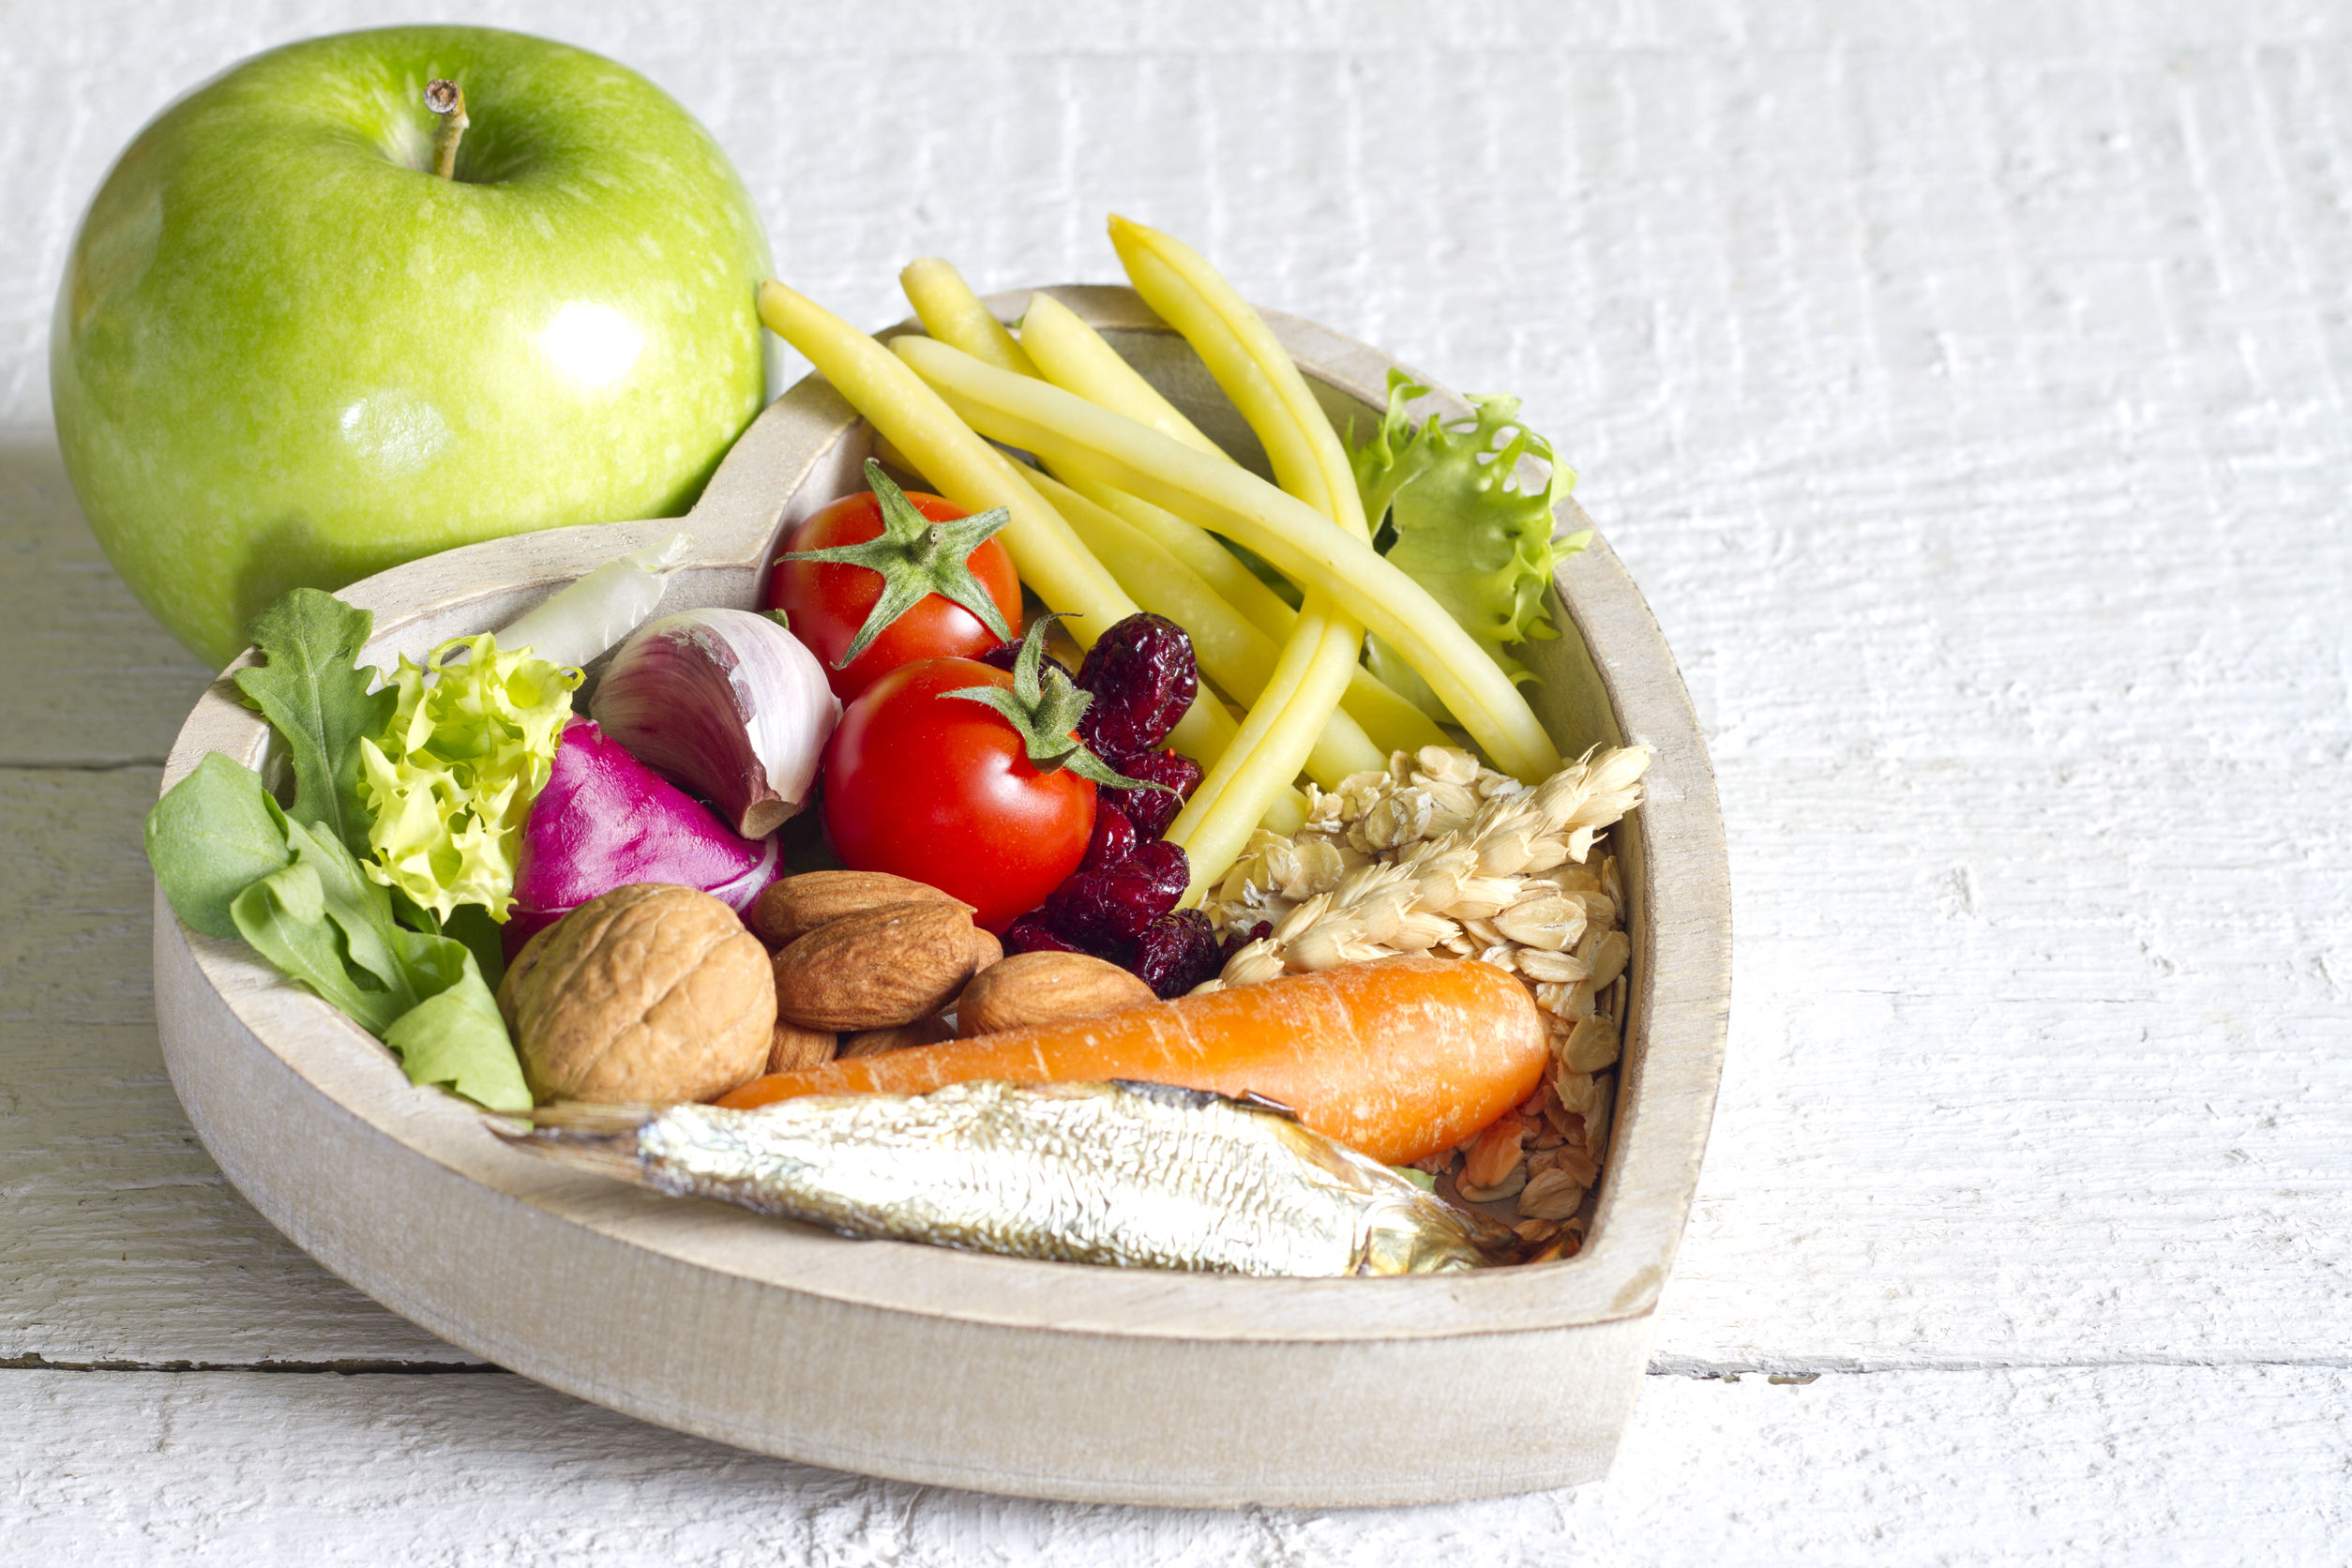 39335770 - healthy food in heart diet abstract concept